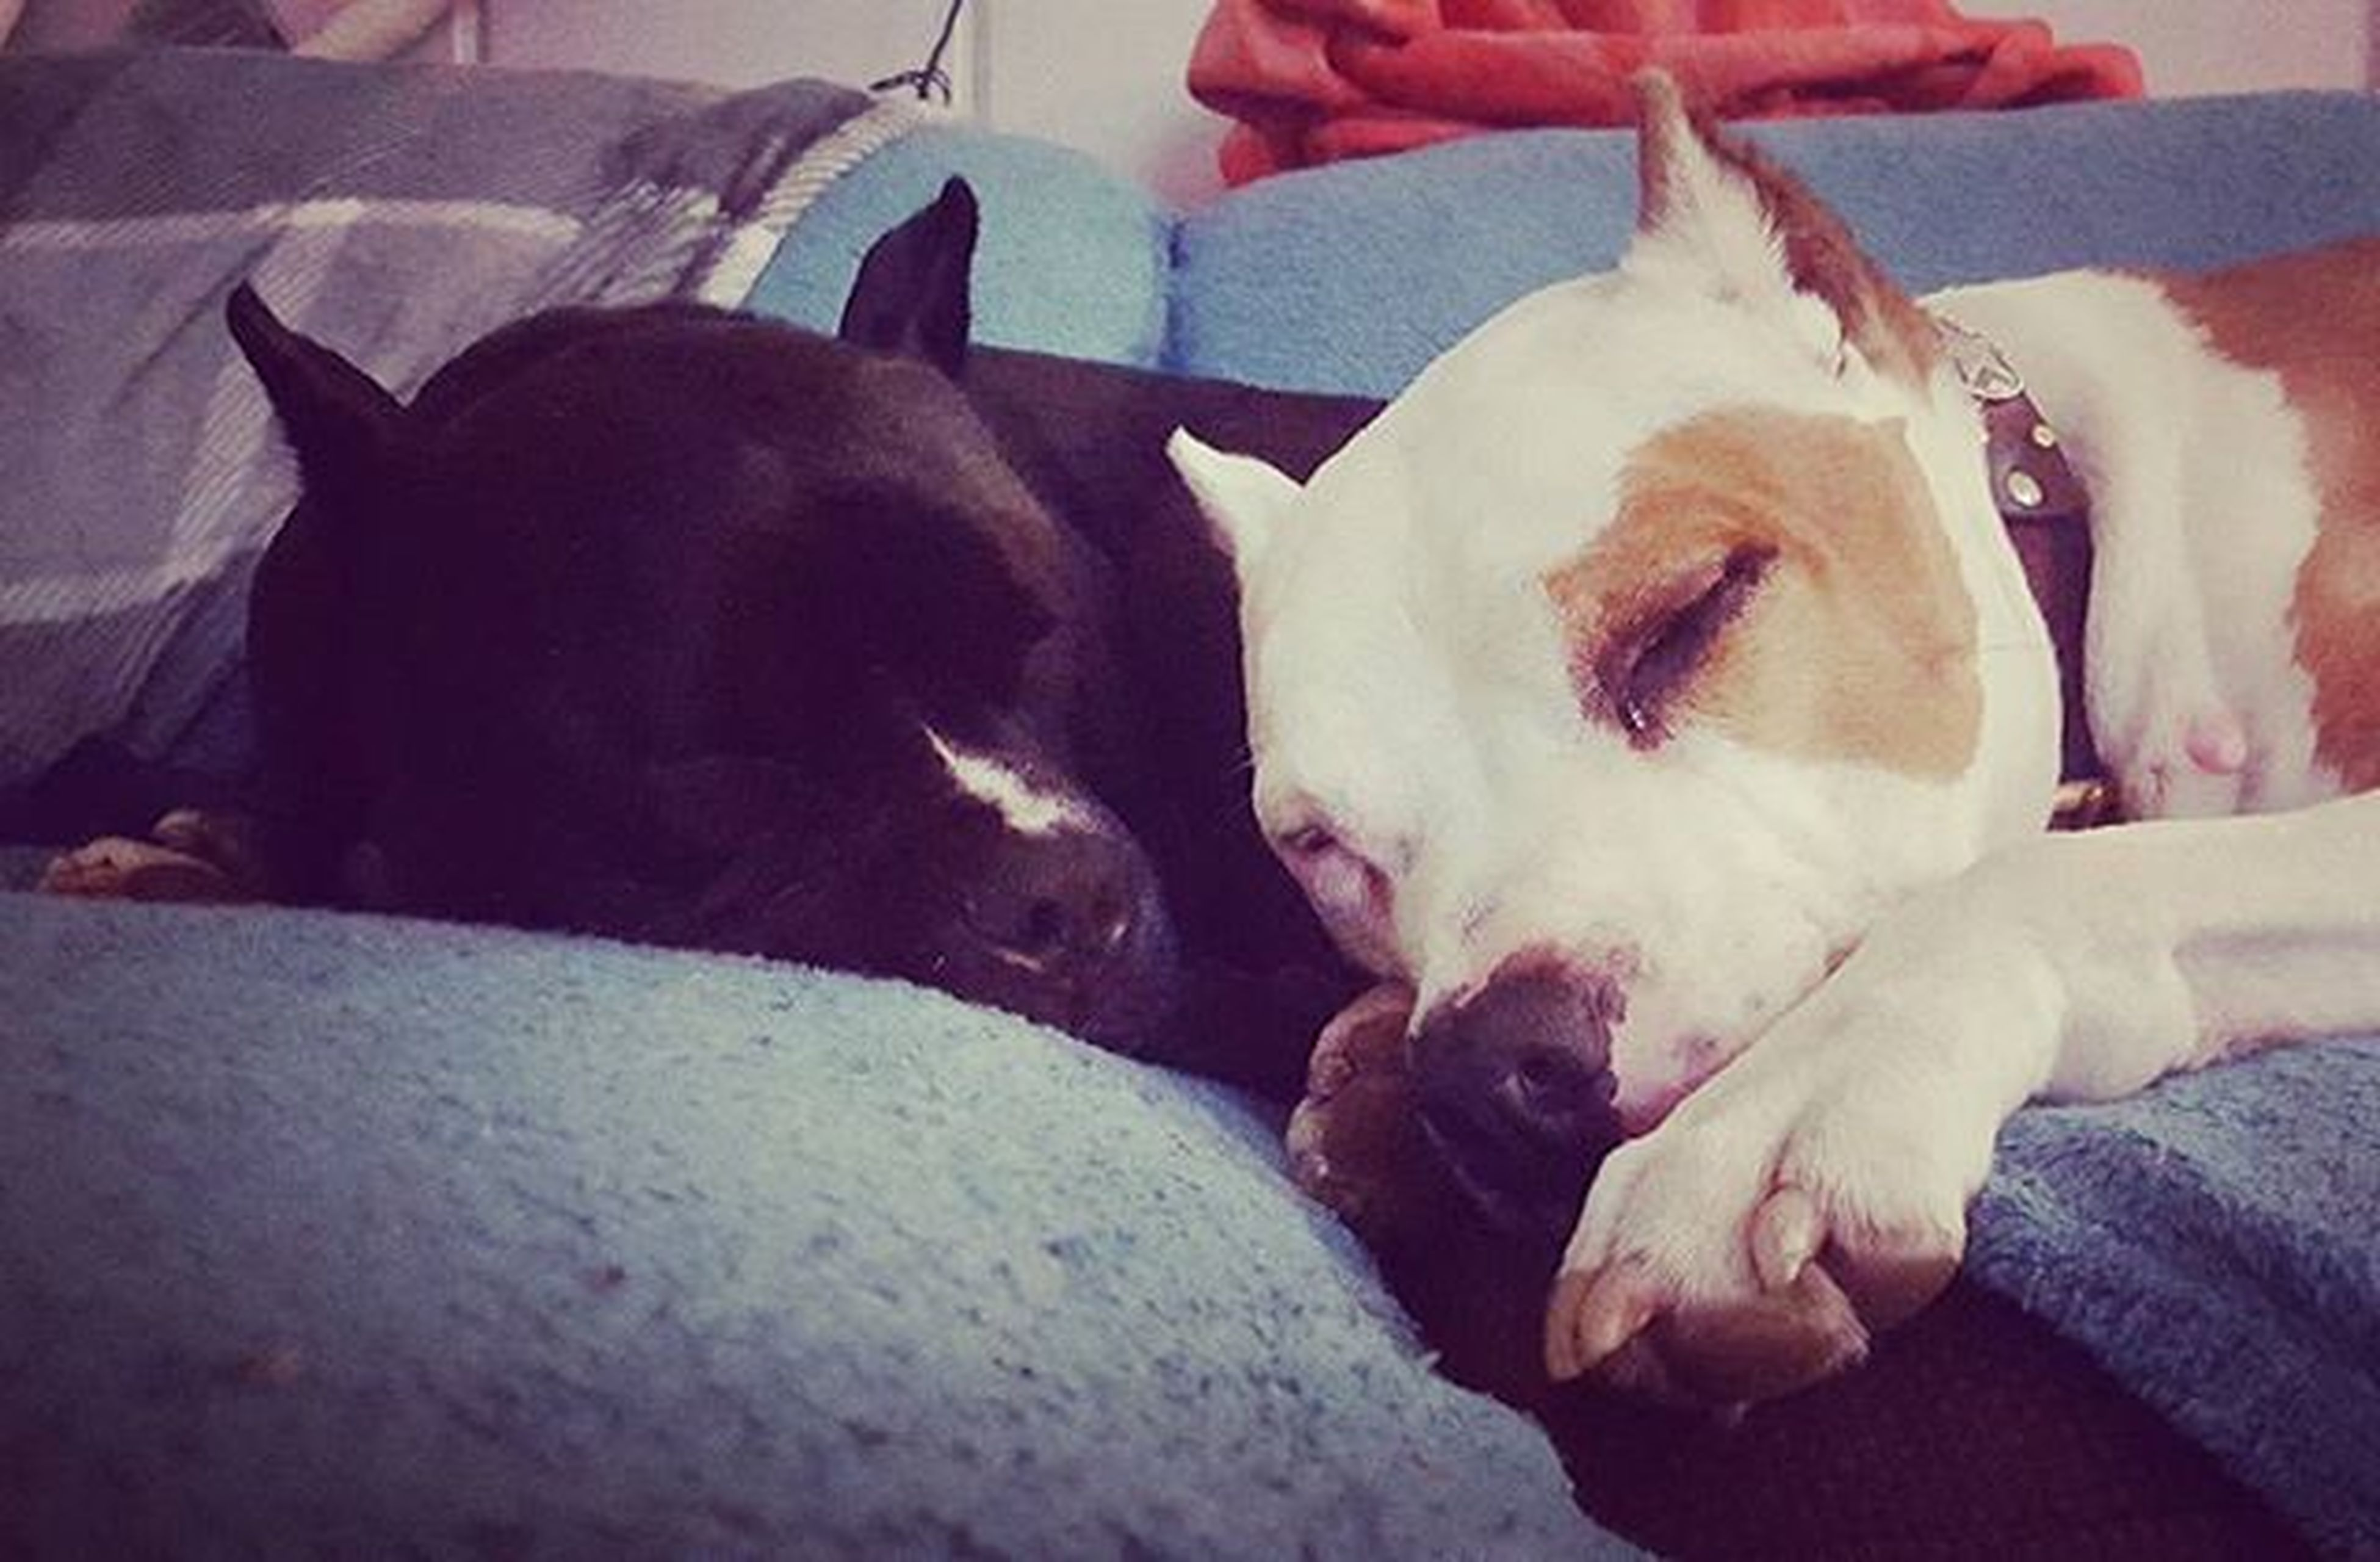 domestic animals, mammal, animal themes, pets, one animal, dog, indoors, relaxation, sleeping, resting, lying down, two animals, eyes closed, home interior, close-up, animal head, bed, togetherness, zoology, vertebrate